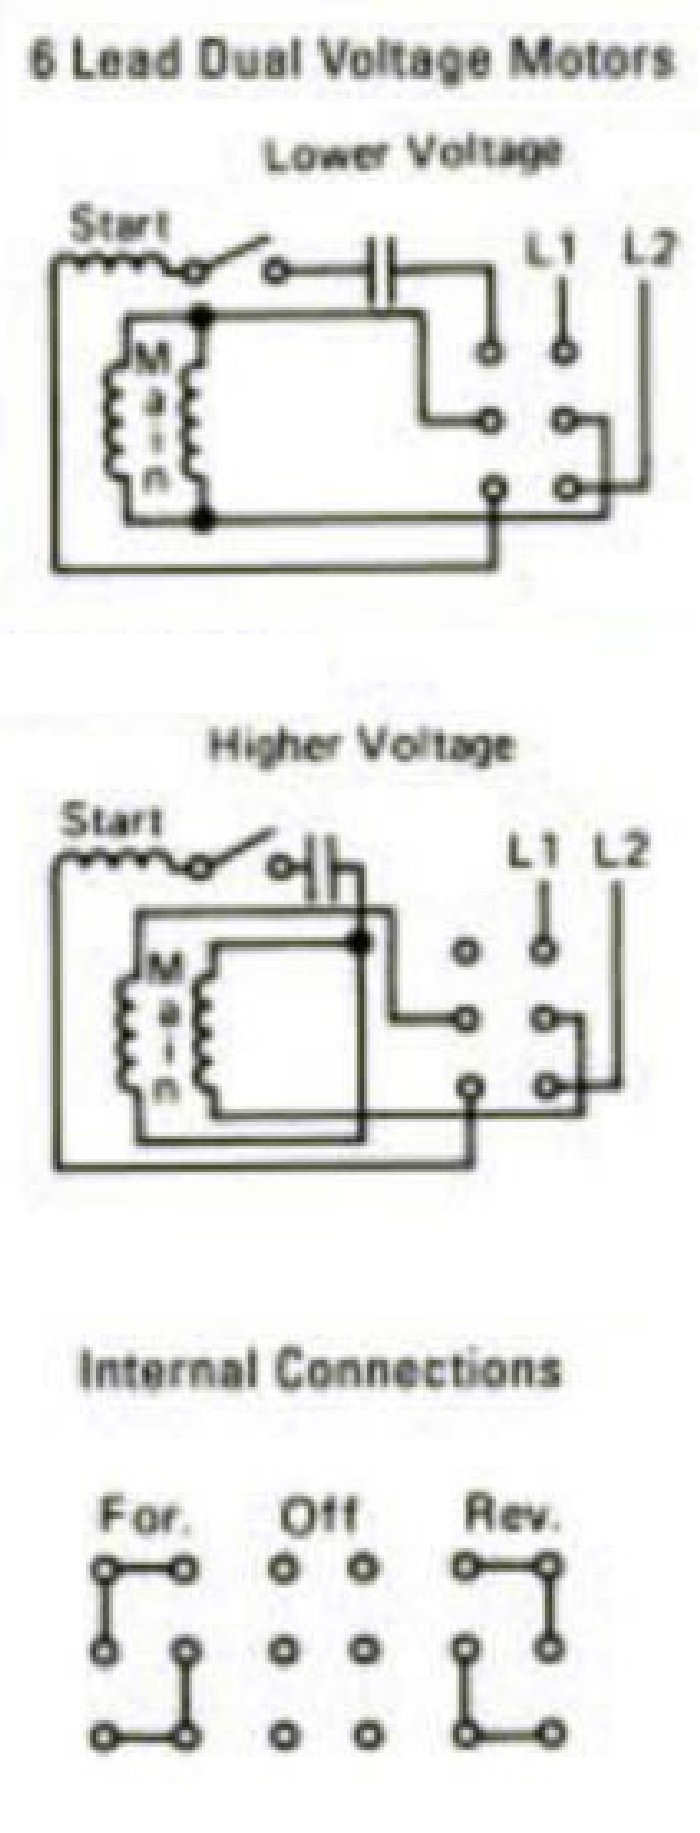 6 lead drum sw wiring boat lift switch wiring need help the hull truth boating and boat lift switch wiring diagram at readyjetset.co